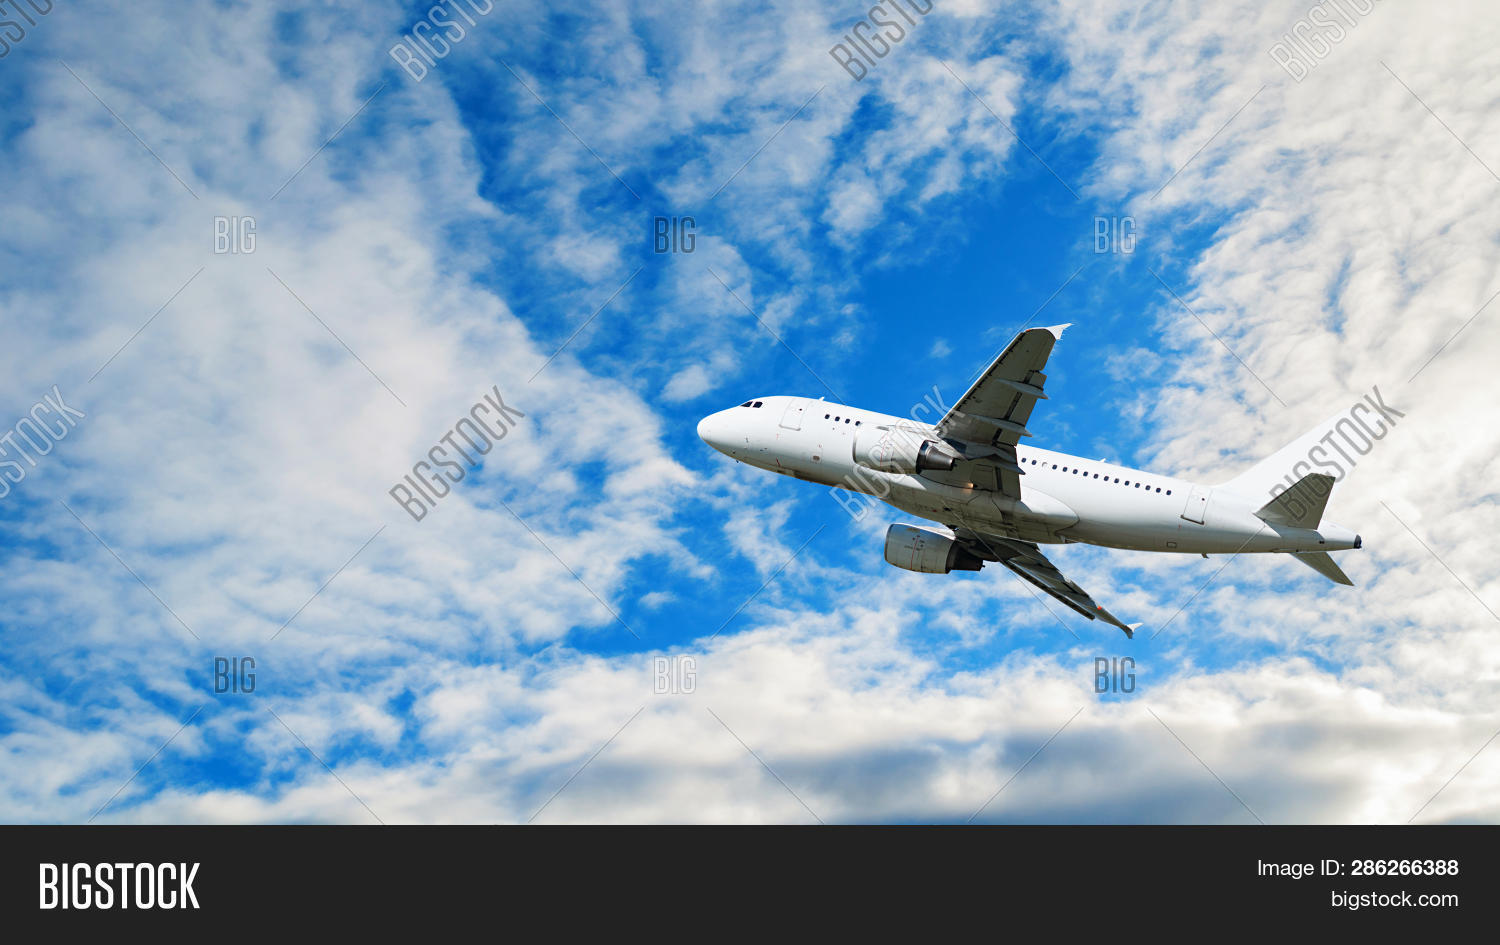 air,aircraft,airliner,airplane,atmosphere,aviation,travel-background,big,blank,blue,business,cargo,cloud,cloudscape,cloudy,day,energy,engine,eye,airplane-flight,airplane-fly,fuselage,heaven,high,huge-airplane,jet,travel-liner,livery,machine,modern-airplane,passenger,travel-plane,power,red,sky,speed,sun,sunlight,sunny,takeoff,travel-technology,tourism,transport,transportation,travel,trip,turbine,vacation,white-airplane,flying-airplane